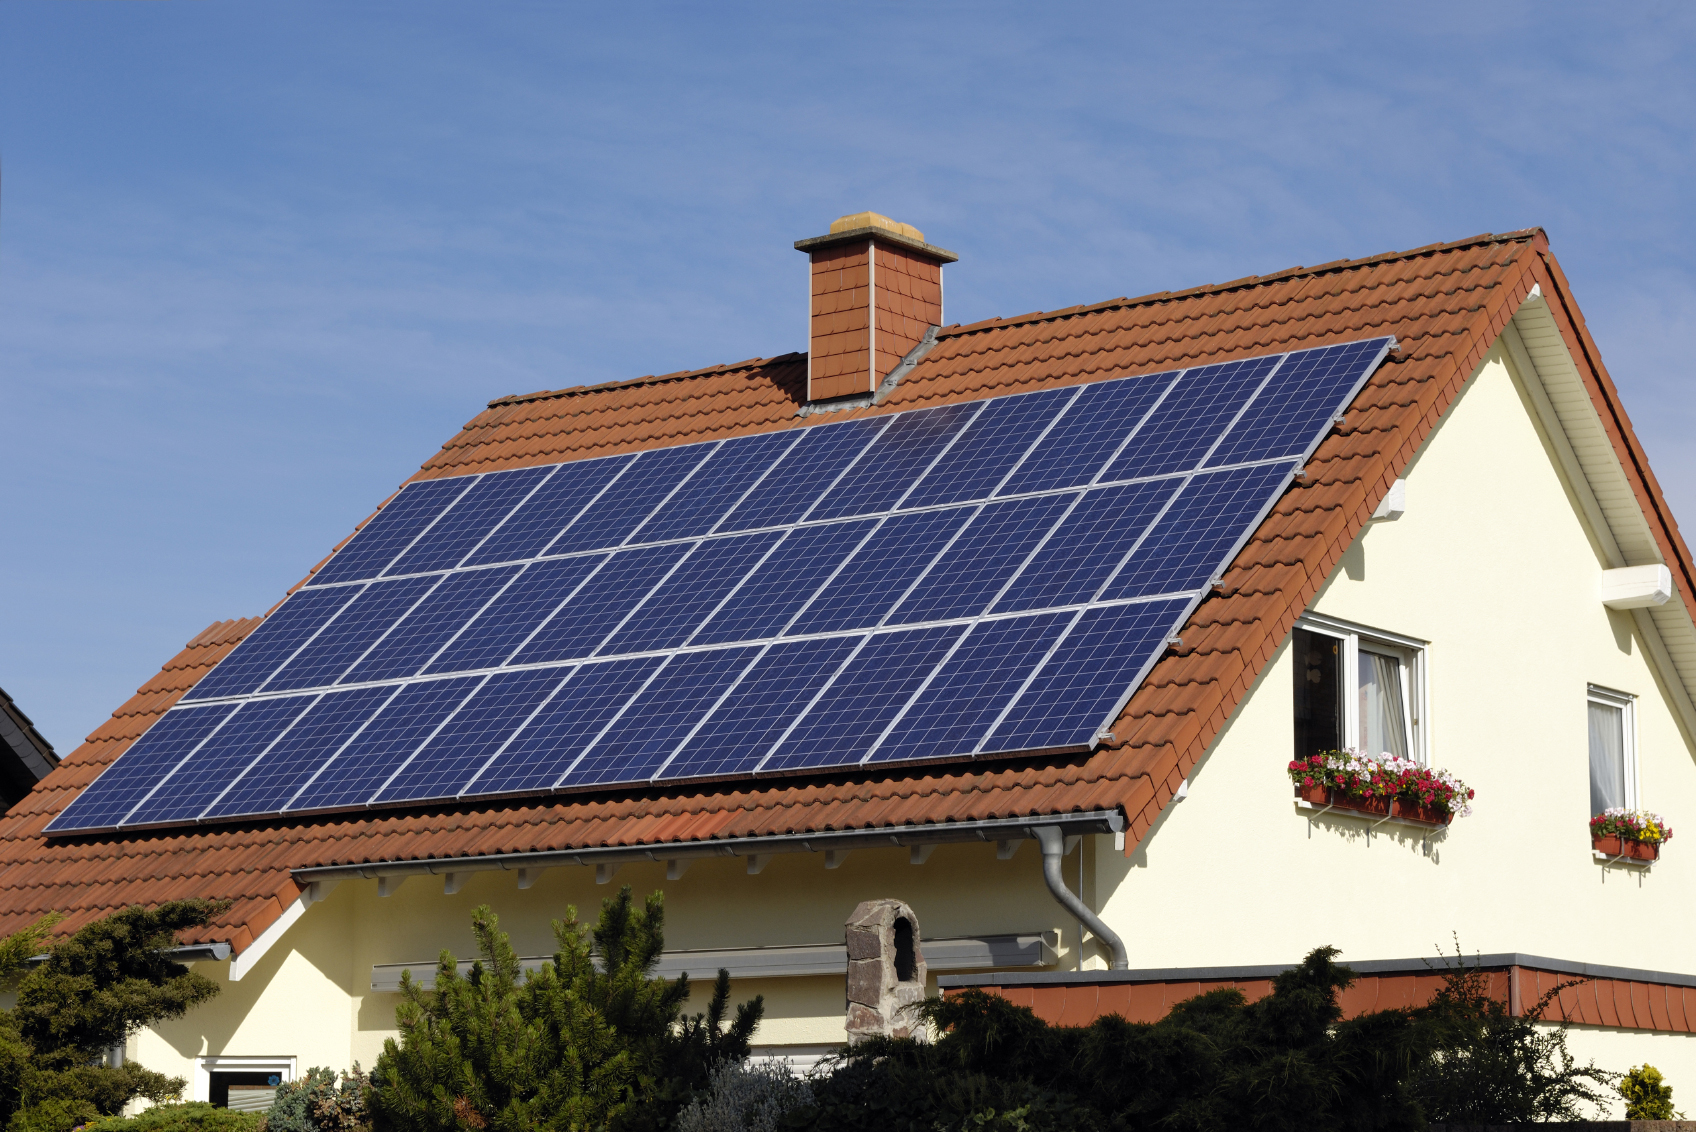 5 Things to Consider Before Installing Solar Panels